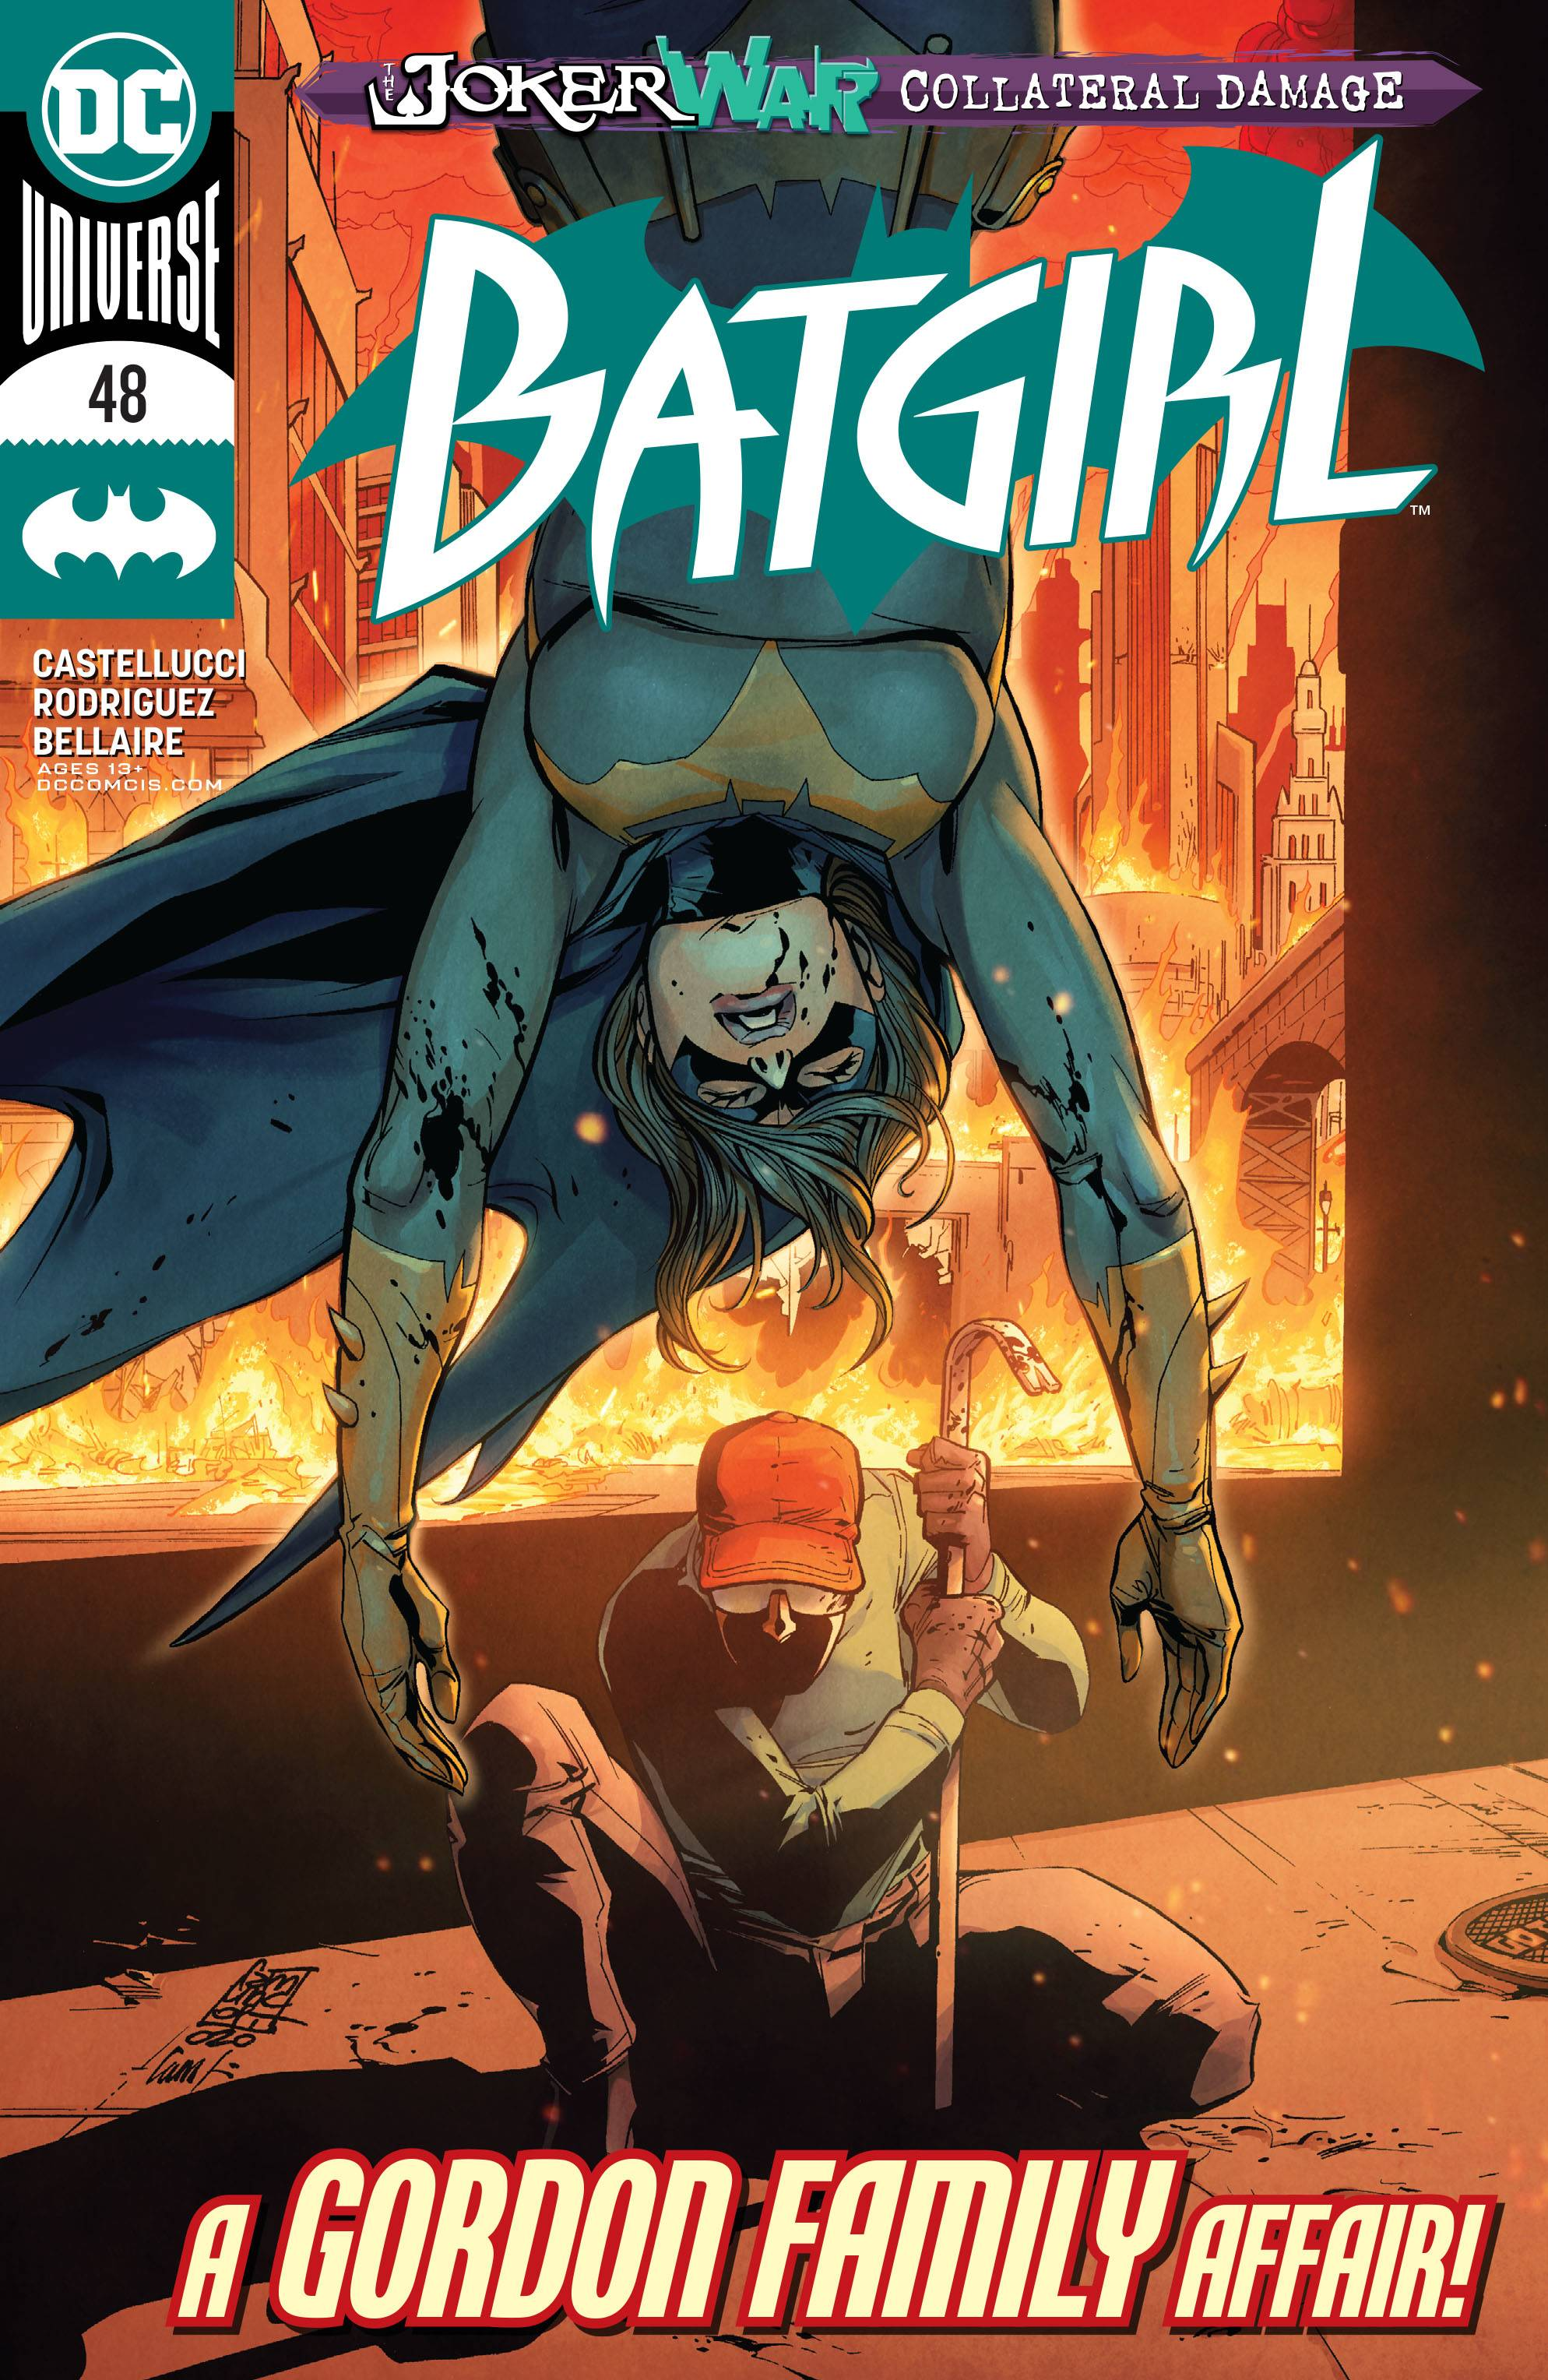 BATGIRL #48 JOKER WAR (RES)